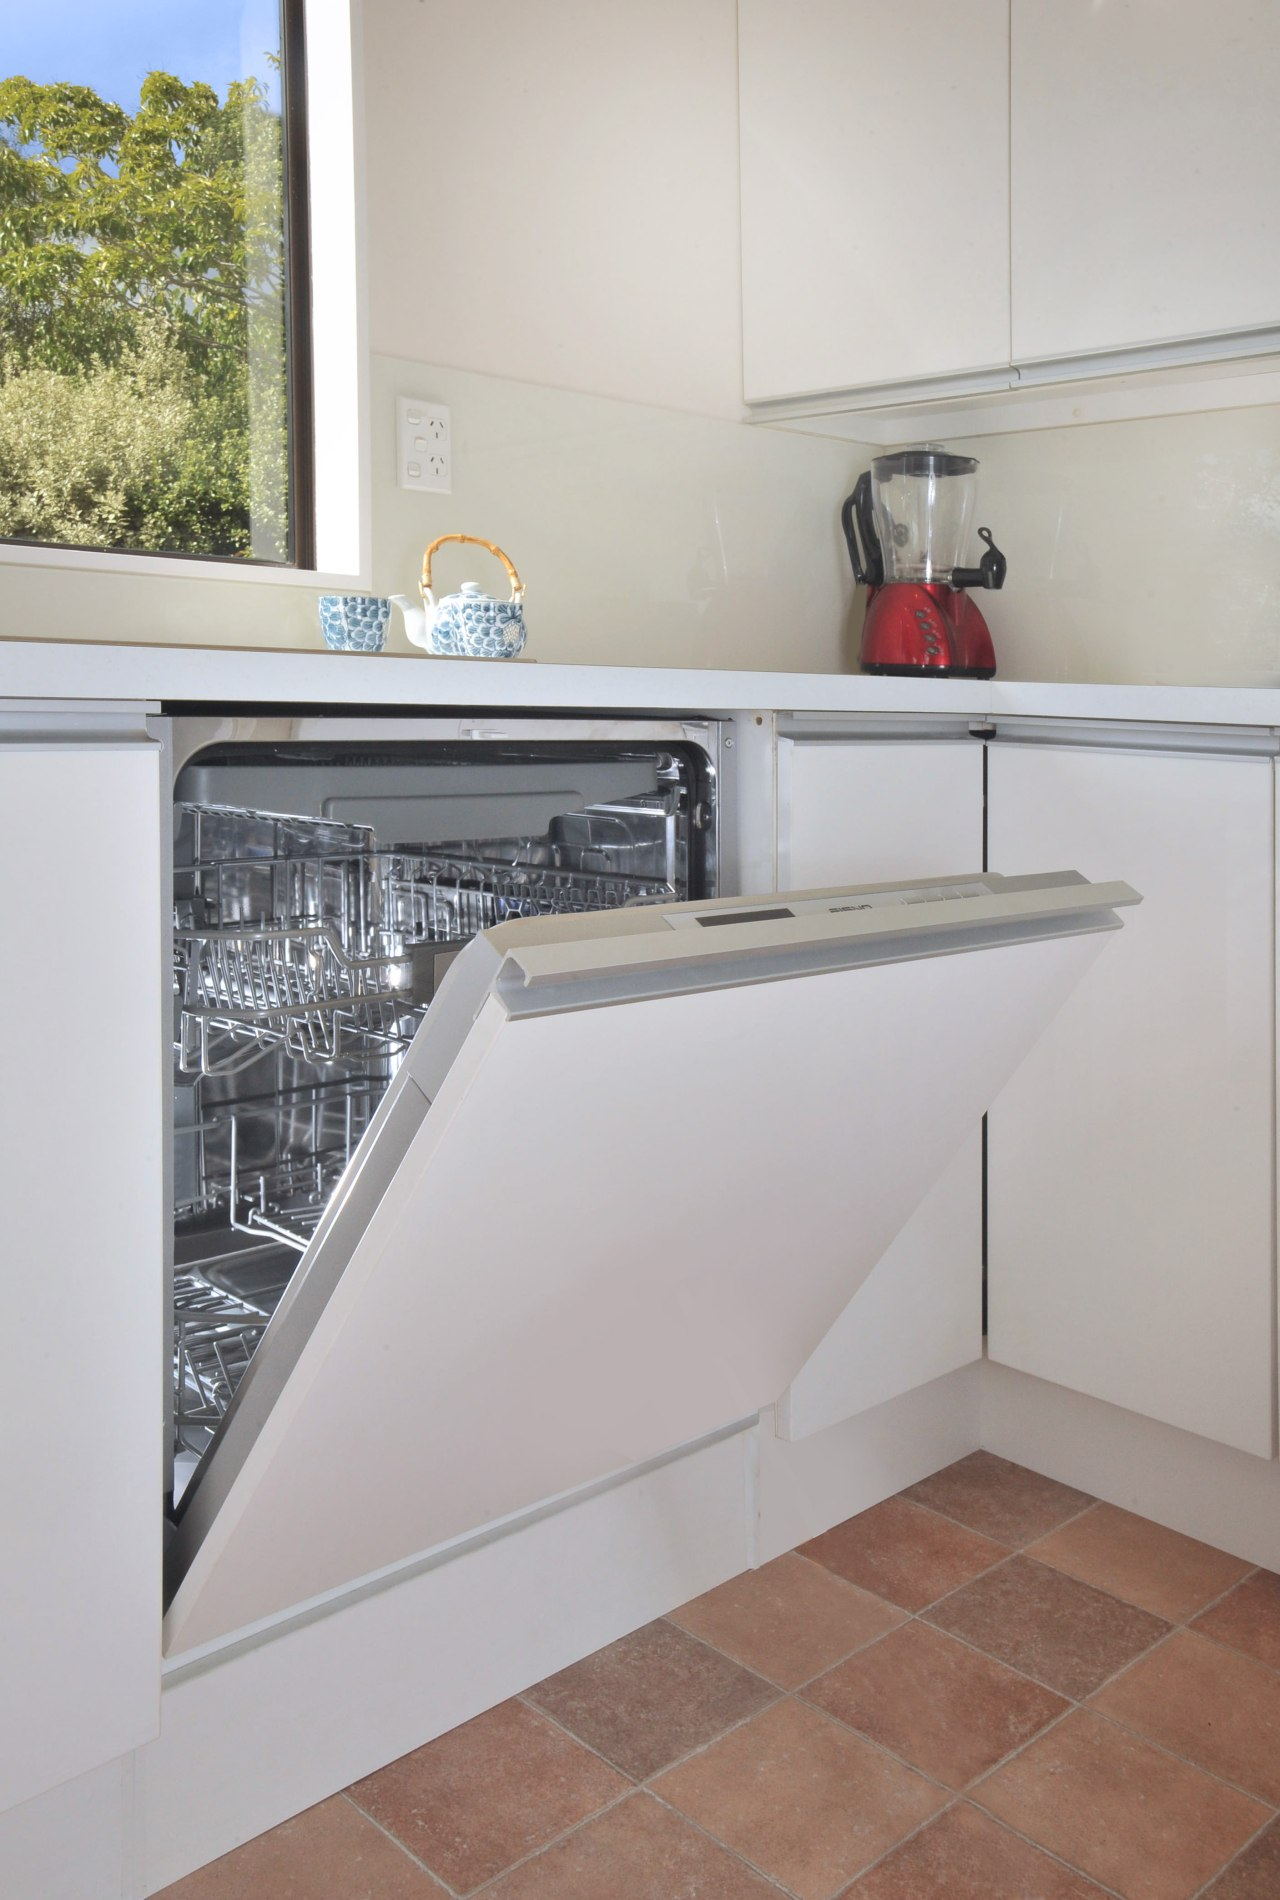 Clean-up in the reinvented kitchen is easy with countertop, home appliance, kitchen, kitchen appliance, major appliance, gray